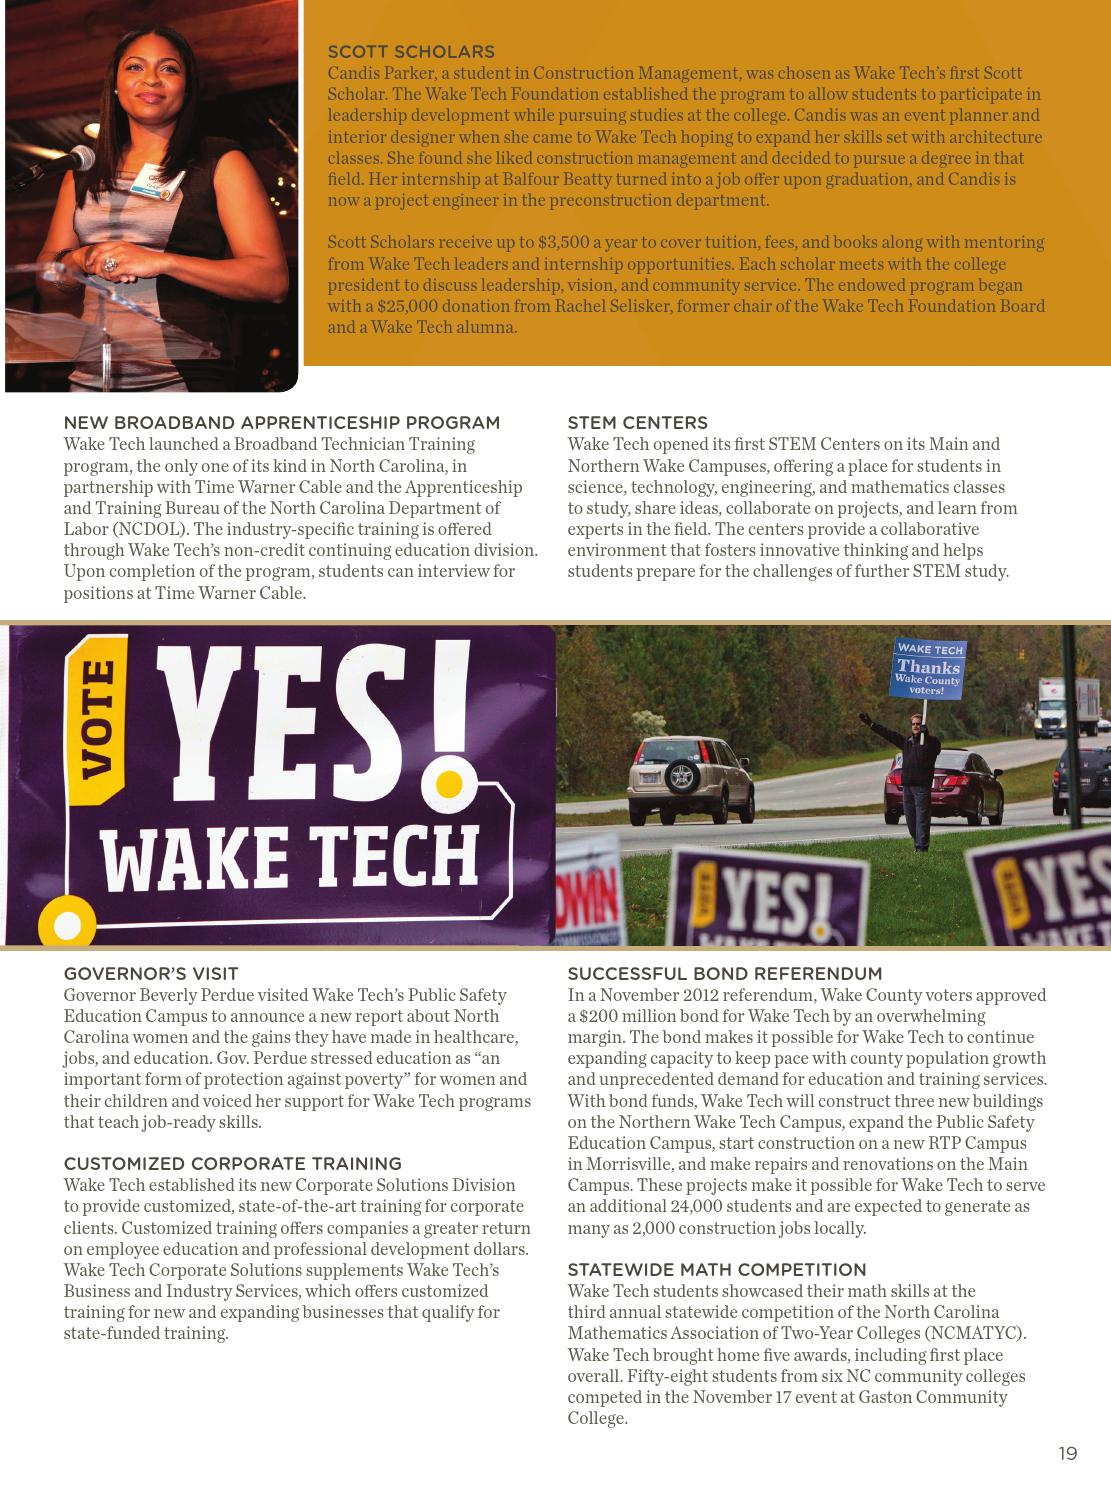 Wake Tech Annual Report Issuu Edition By Wake Tech Community College Issuu